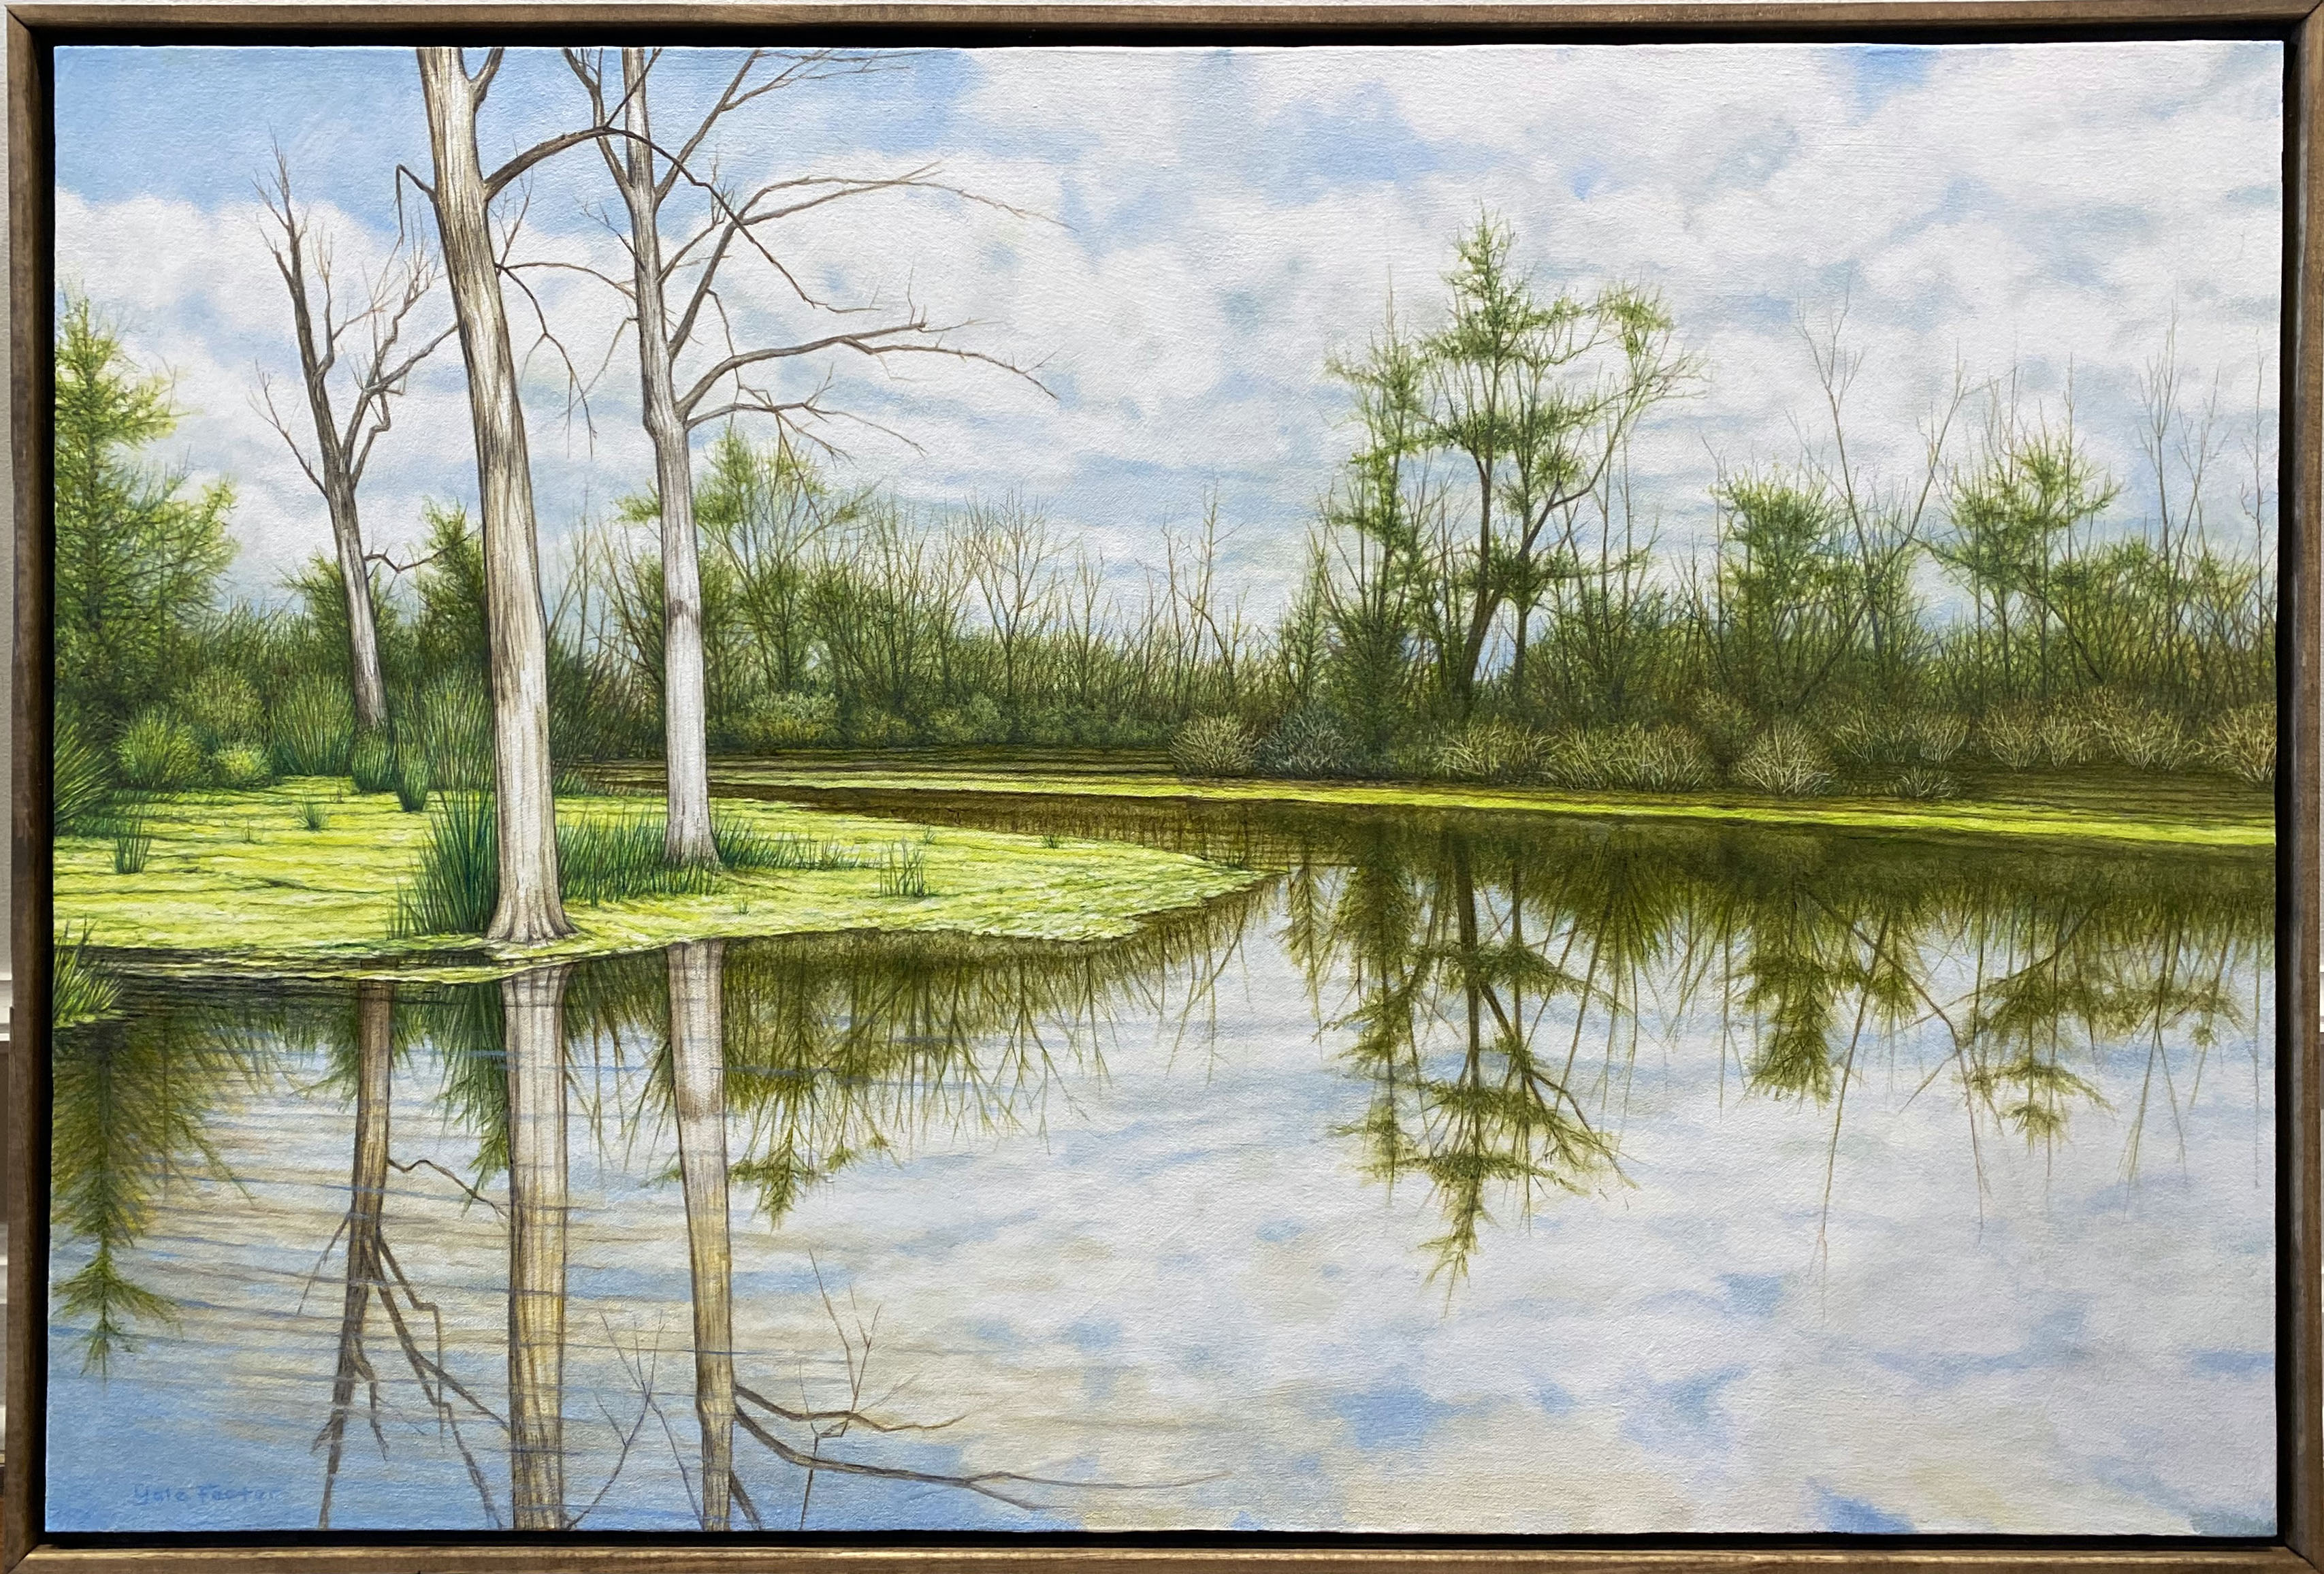 GALIEN RIVER,  oil on canvas, 24 x 36 in